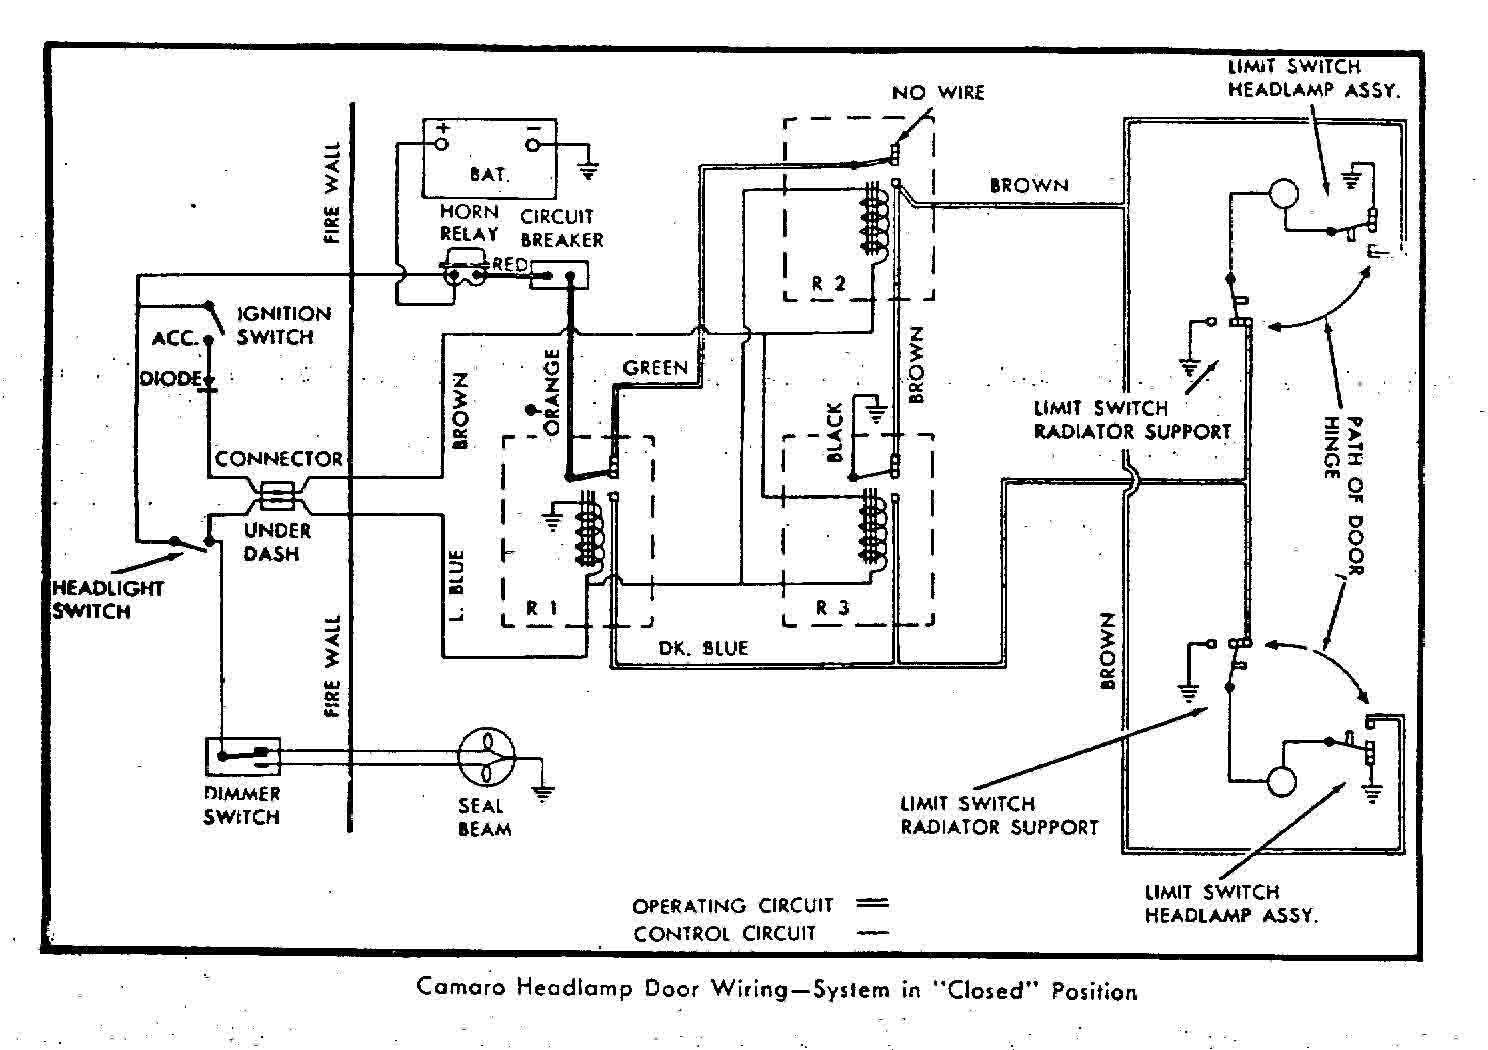 hight resolution of 1968 chevy camaro ignition switch wiring diagram data wiring diagram 1968 chevy ignition switch diagram